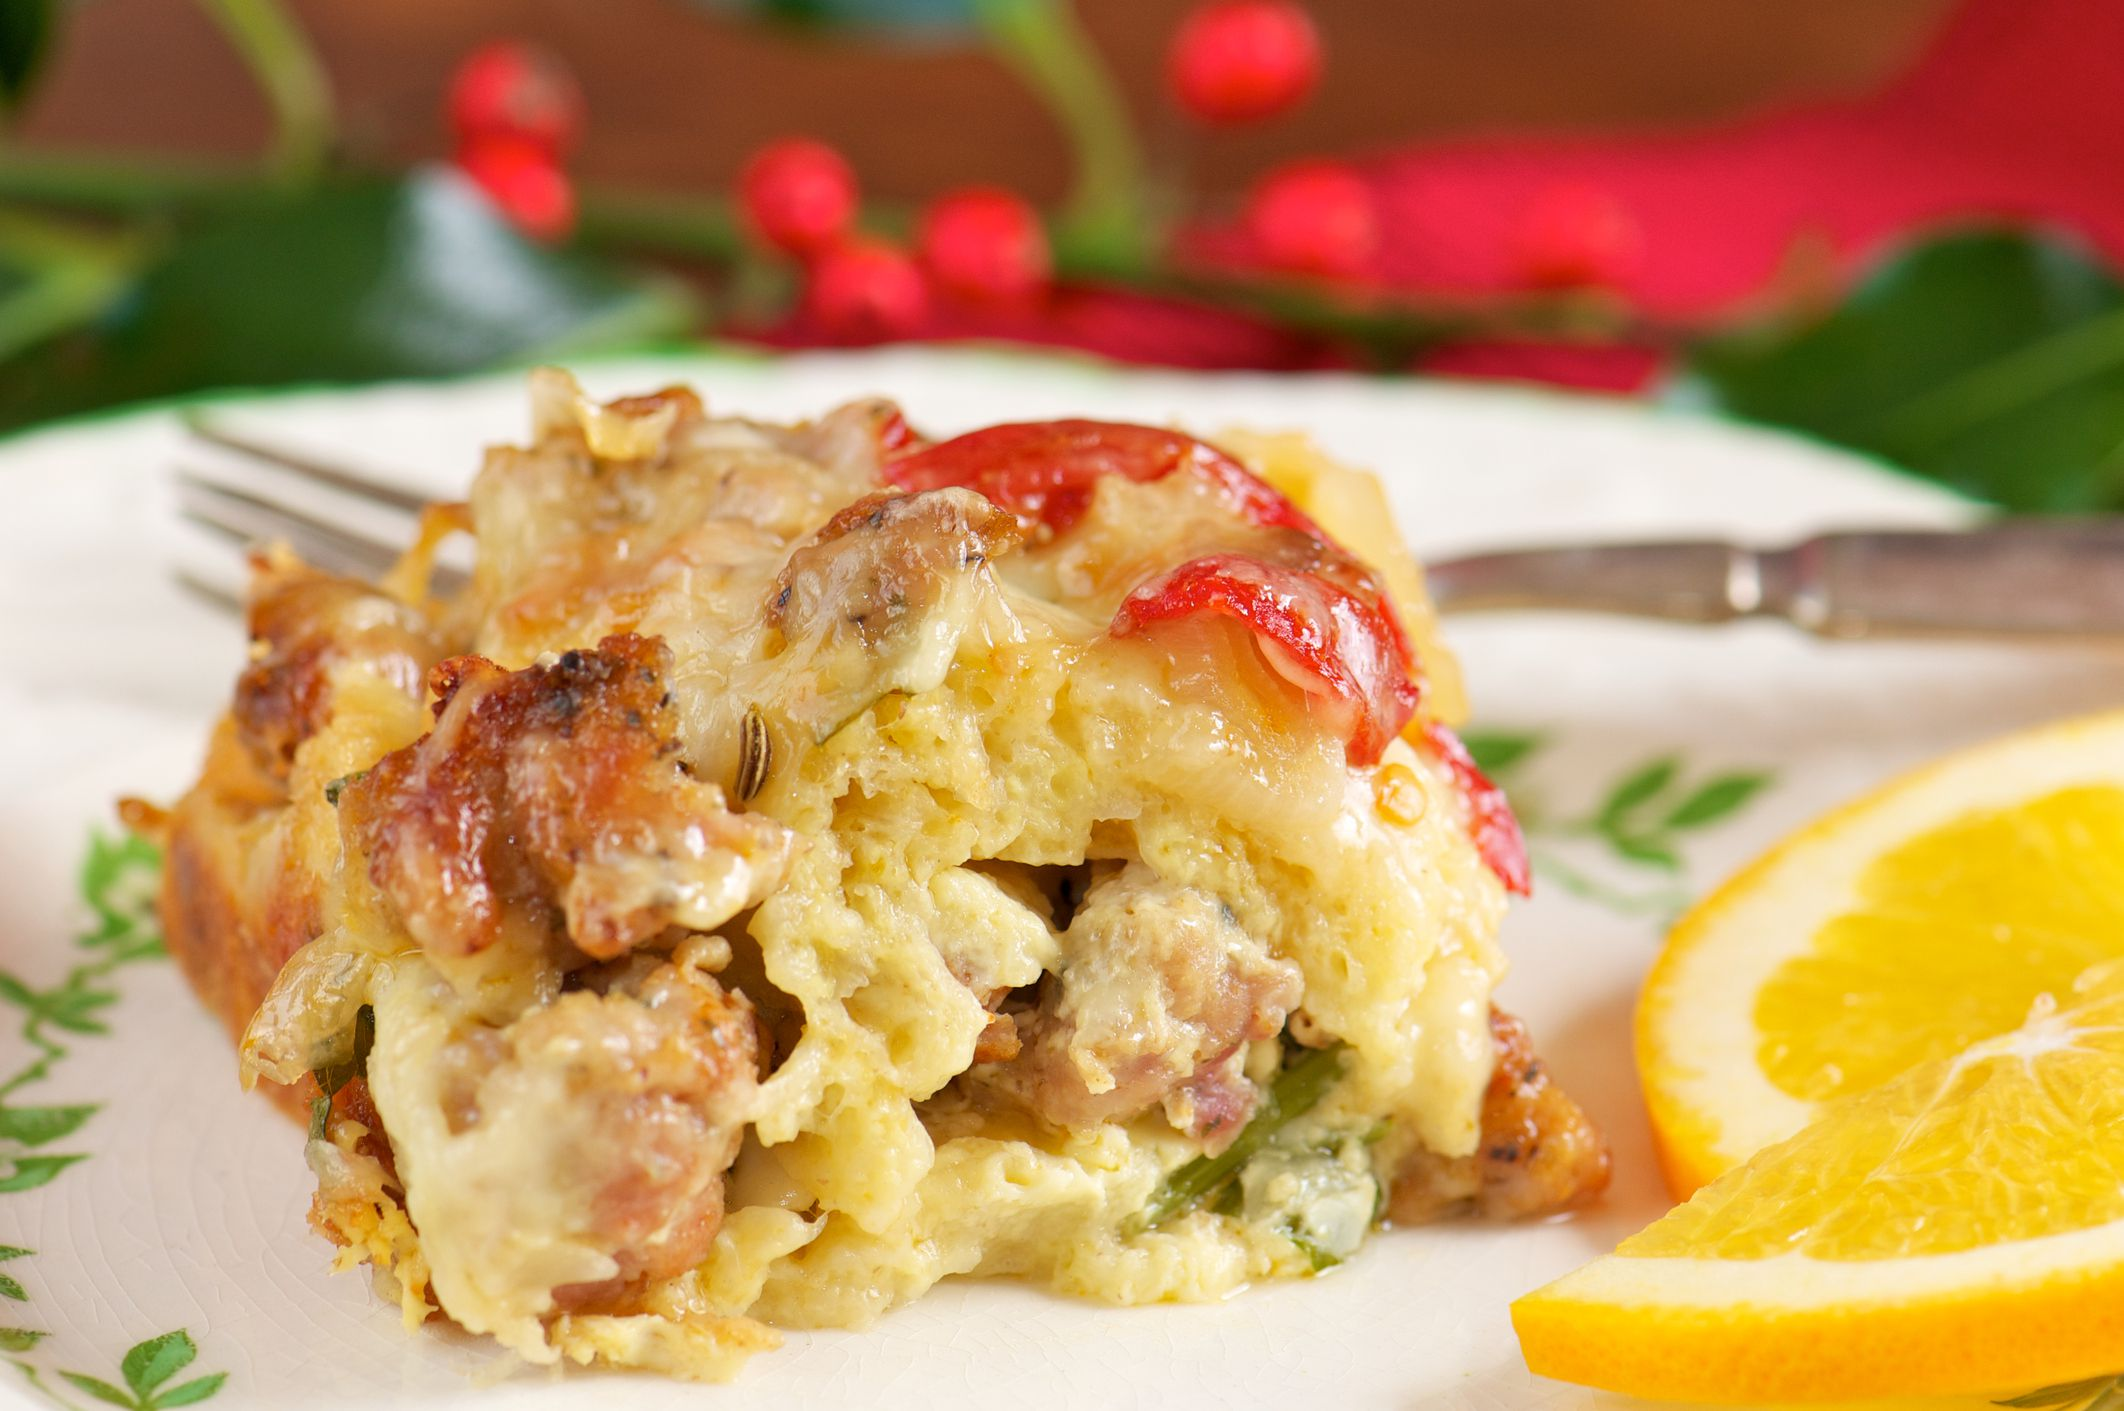 Swiss Eggs is a Delicious Casserole Recipe Perfect for Brunch